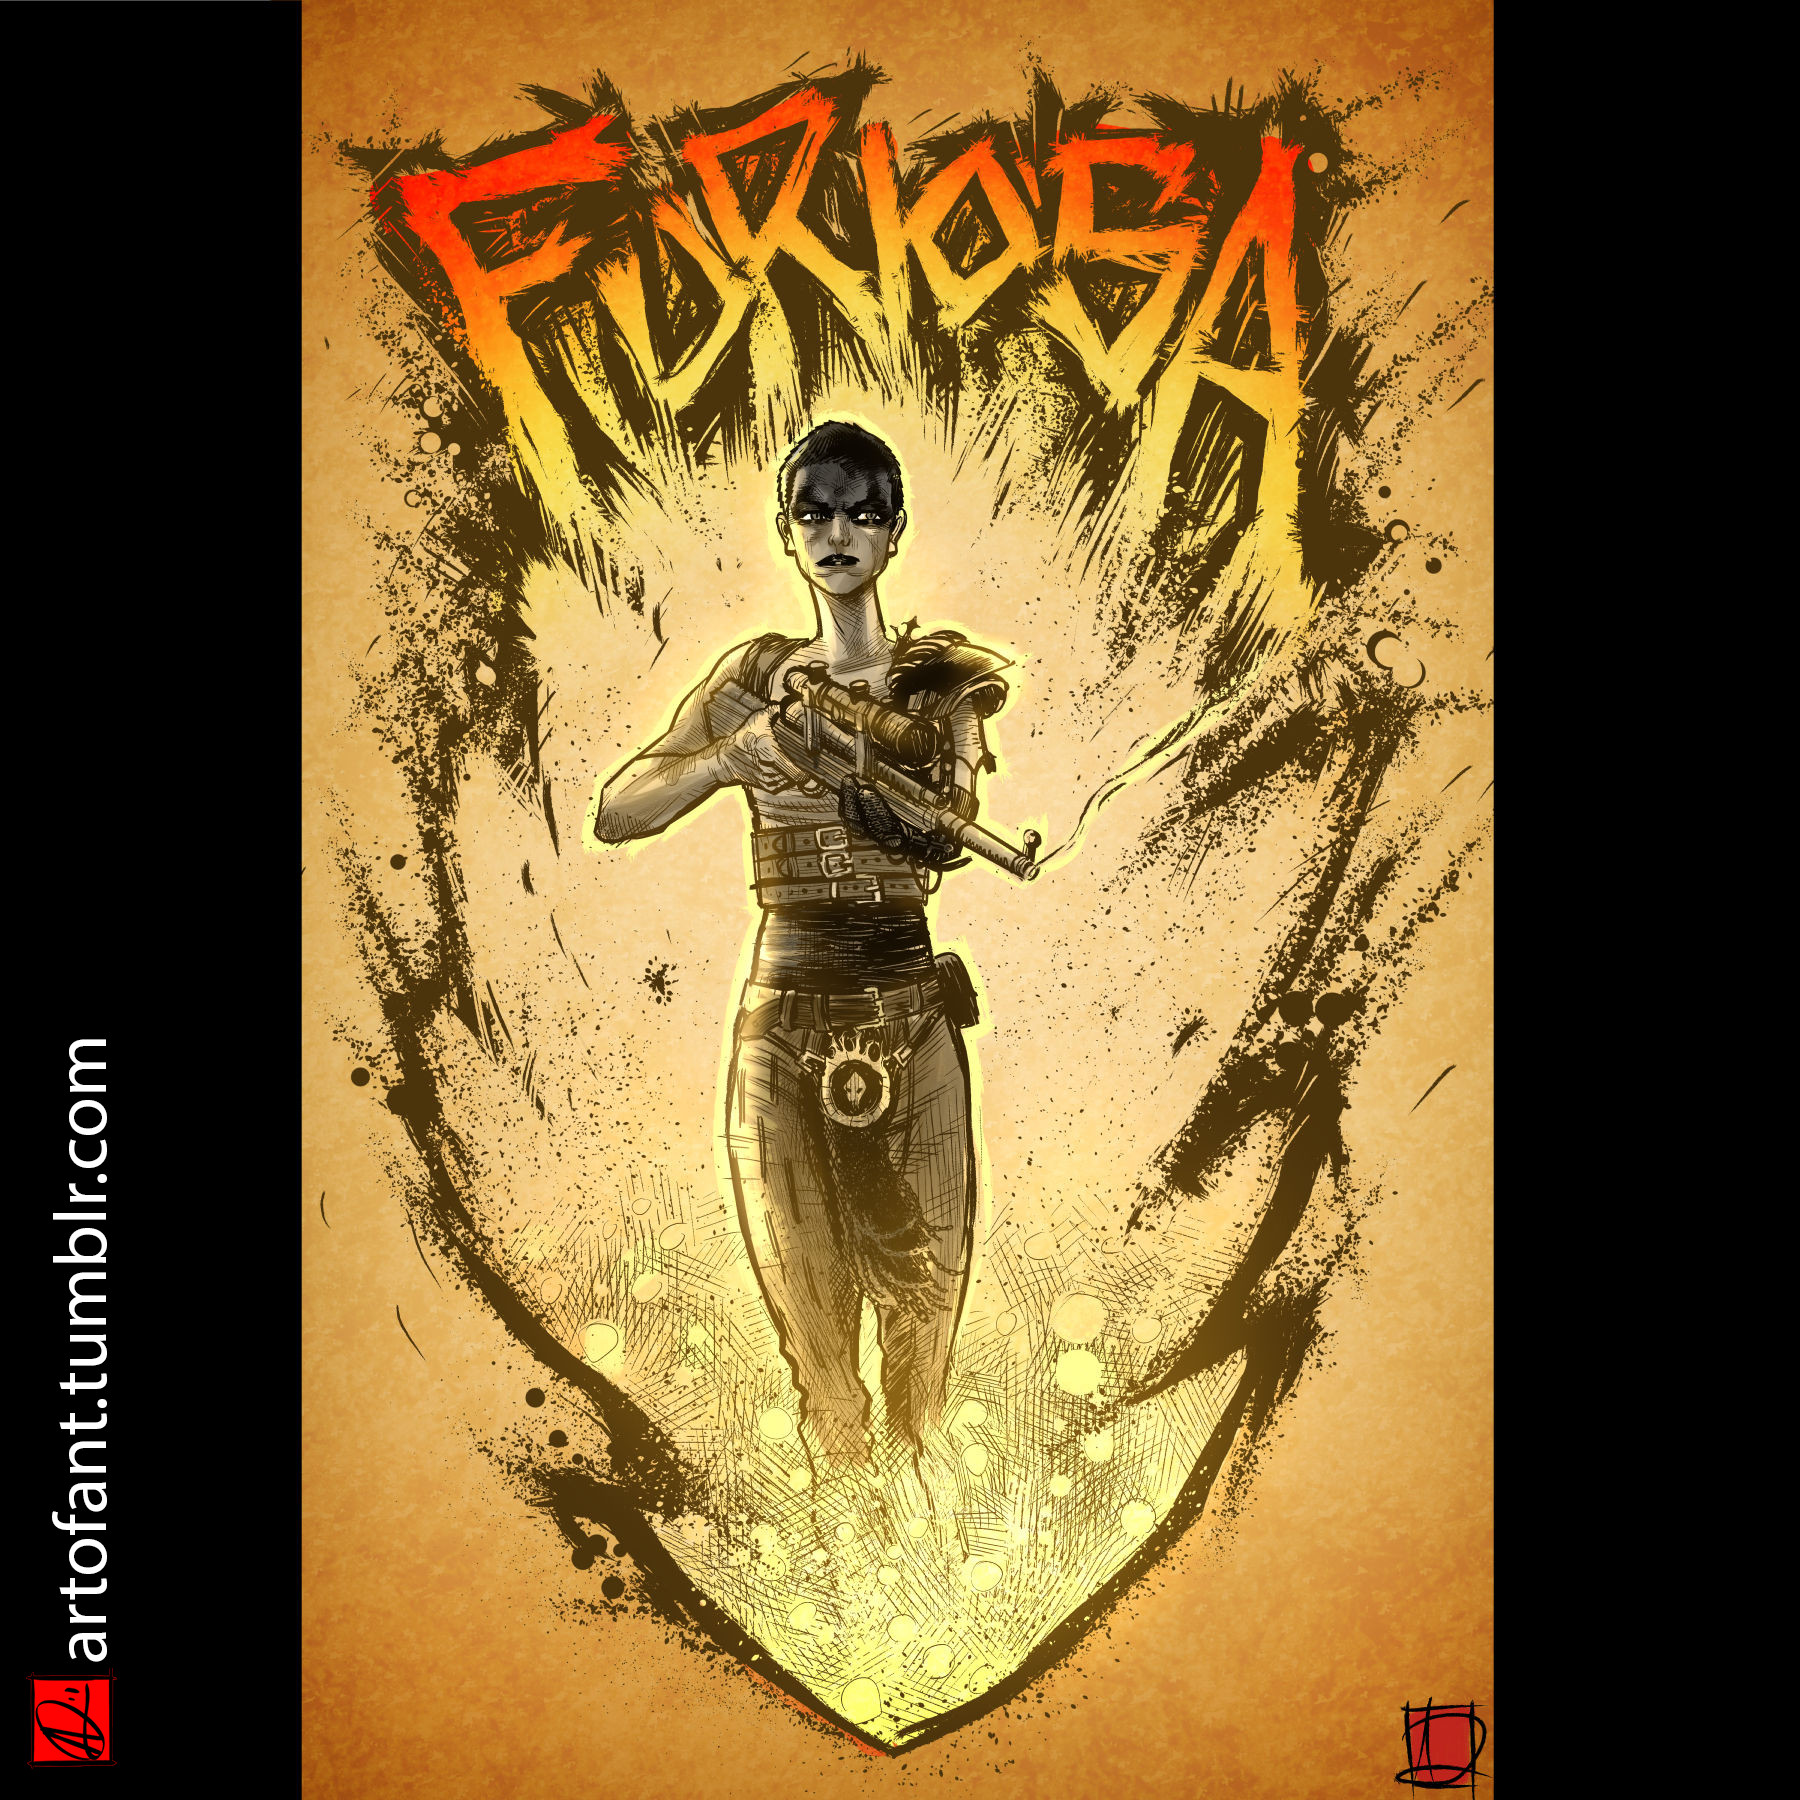 Anthony diecidue furiosa